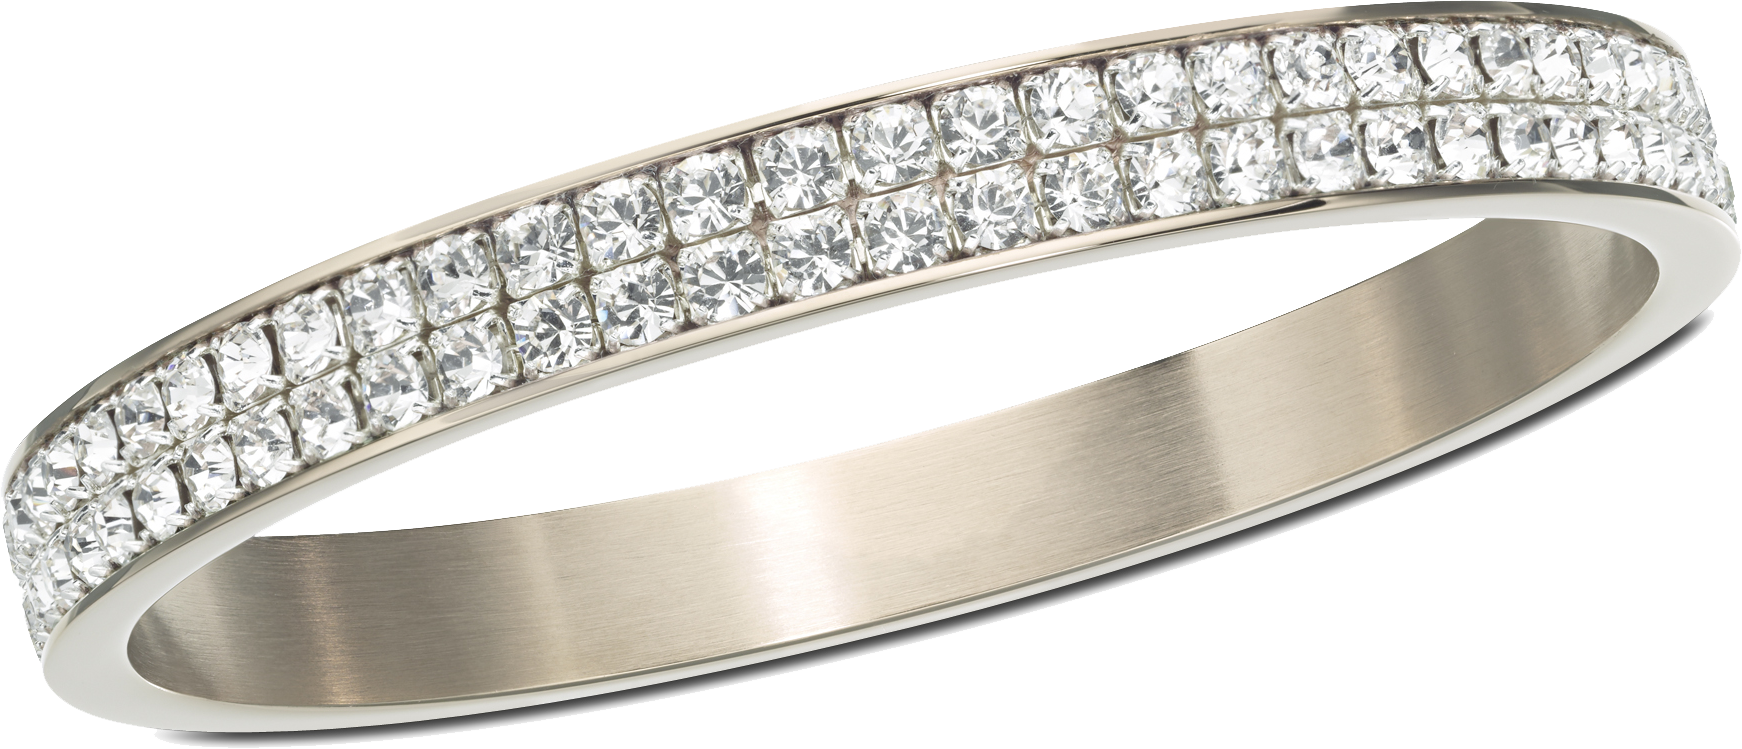 Silver Ring With Diamond Png Image Purepng Free Transparent Cc0